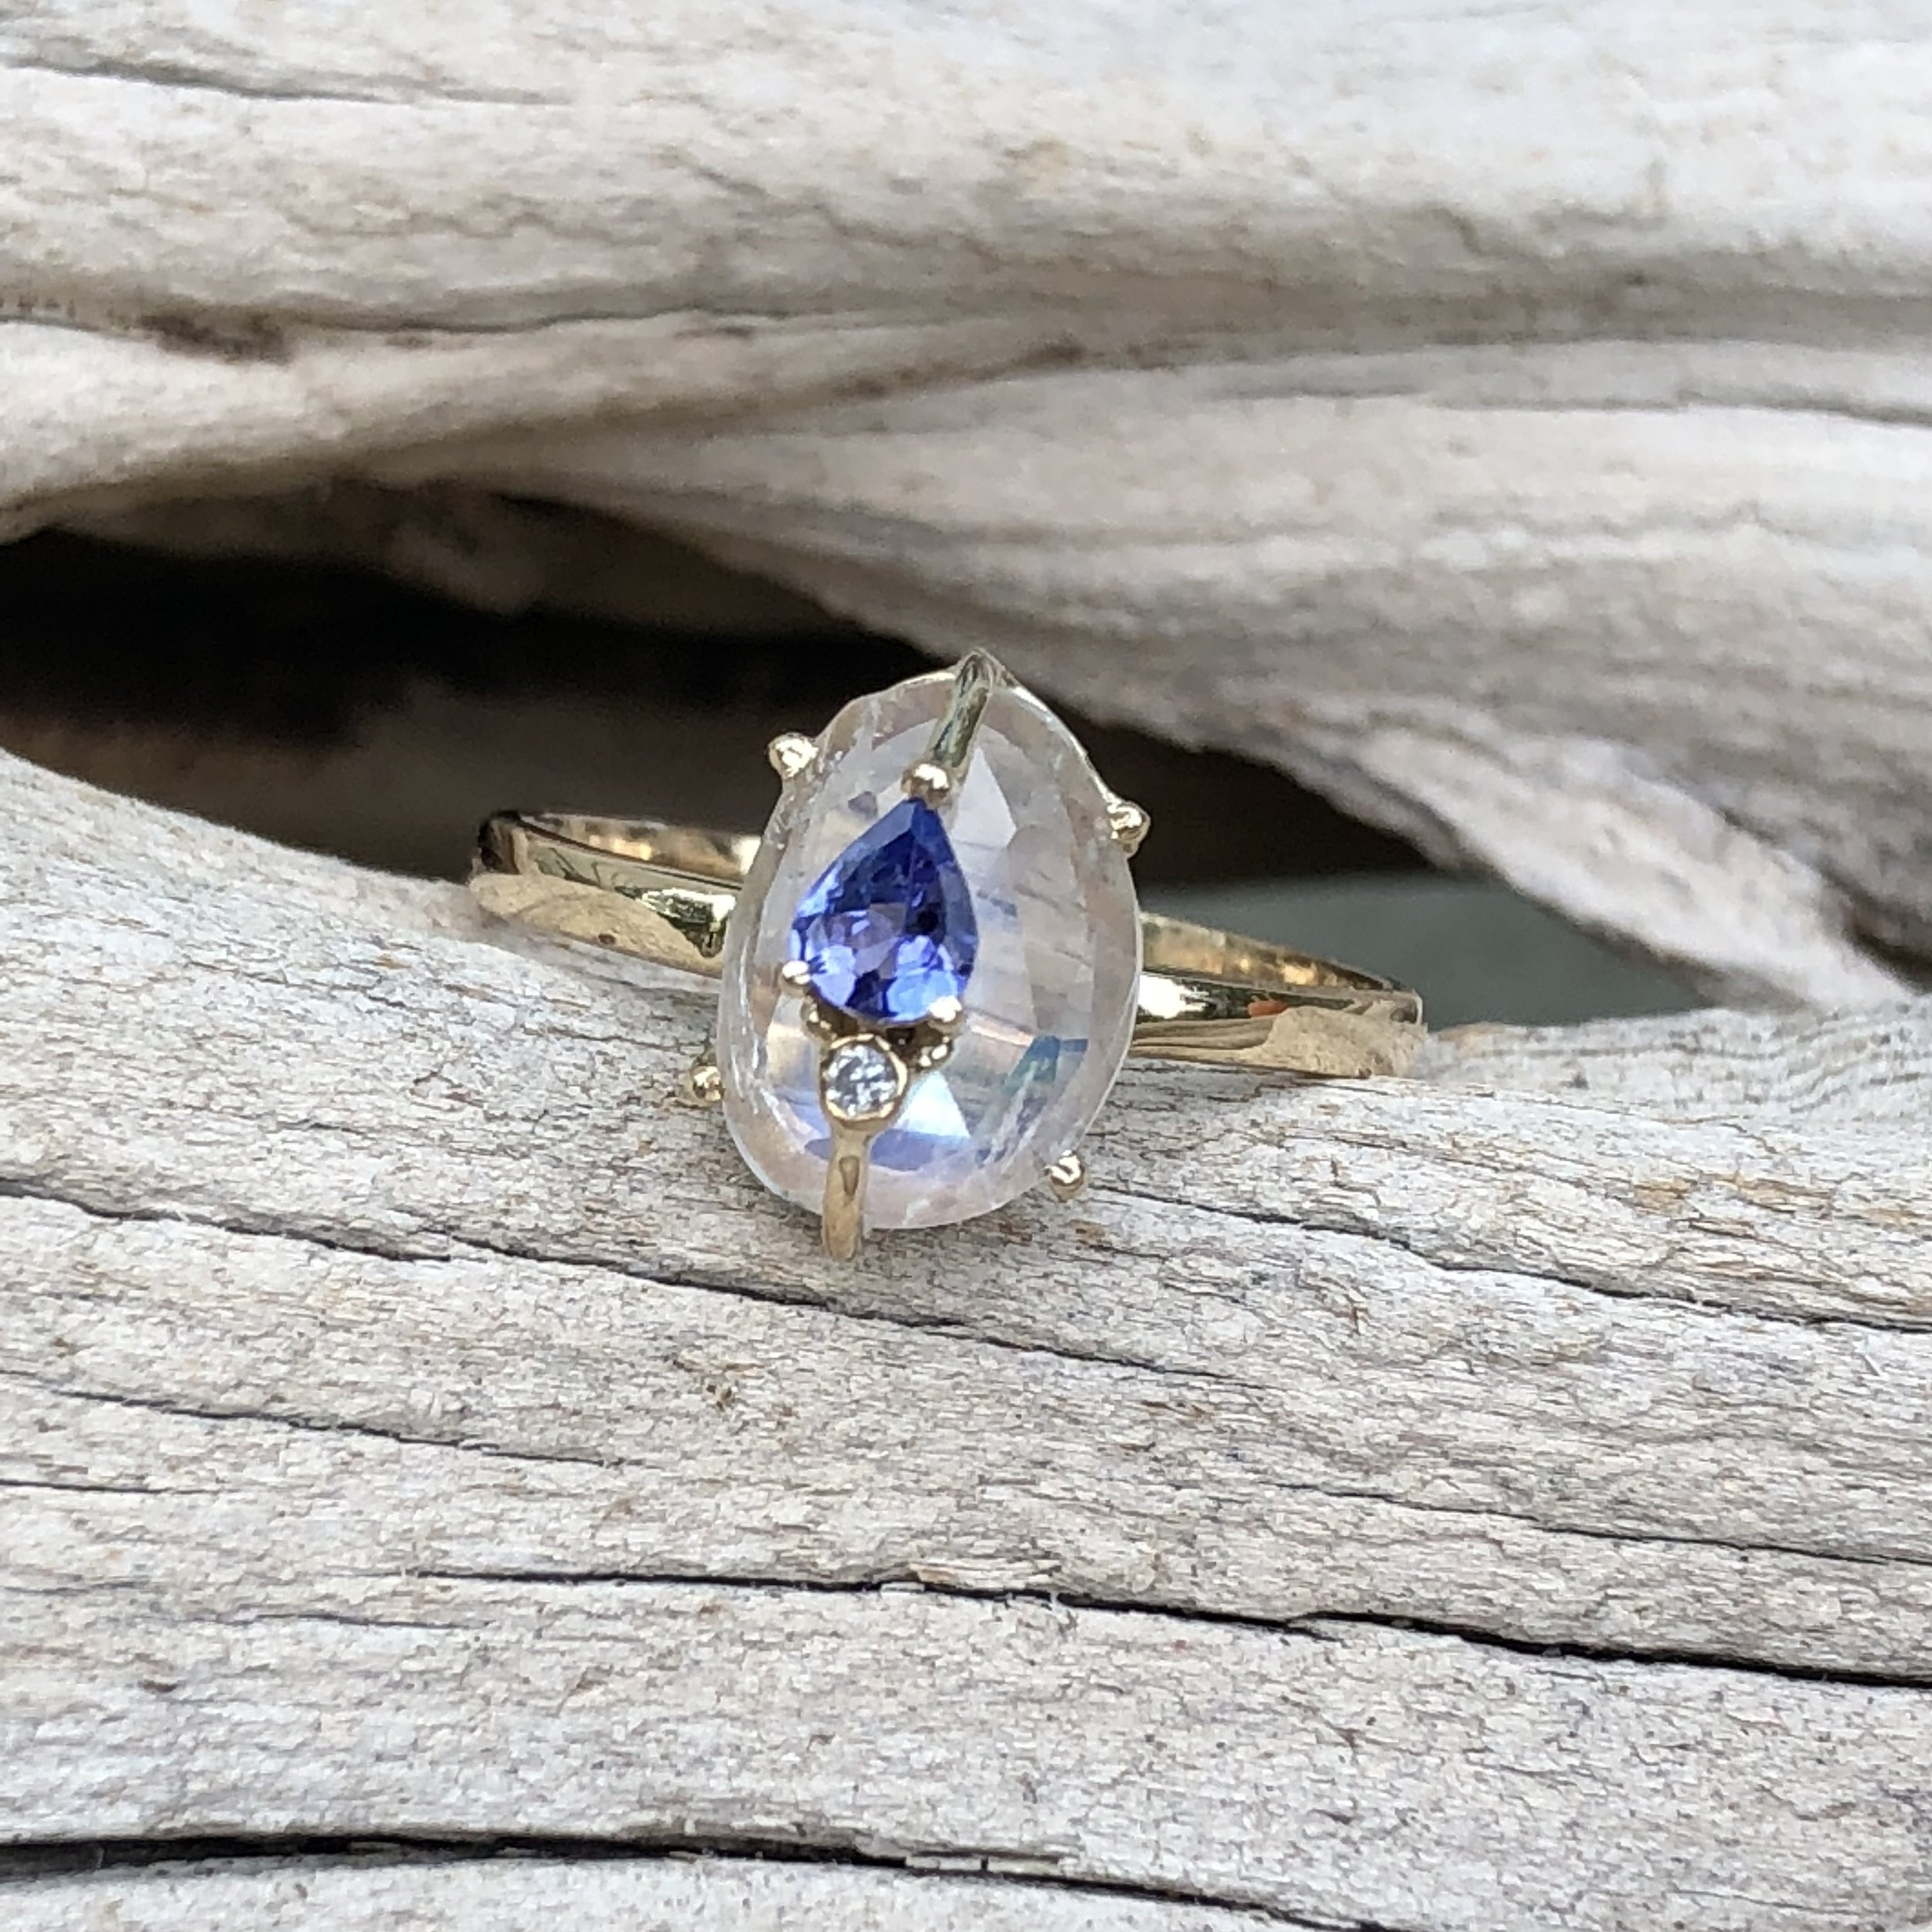 ENTER TO WIN THIS MOONSTONE AND TANZANITE RING BY LORIANN JEWELRY AT THE JEWELRY SHOWCASE